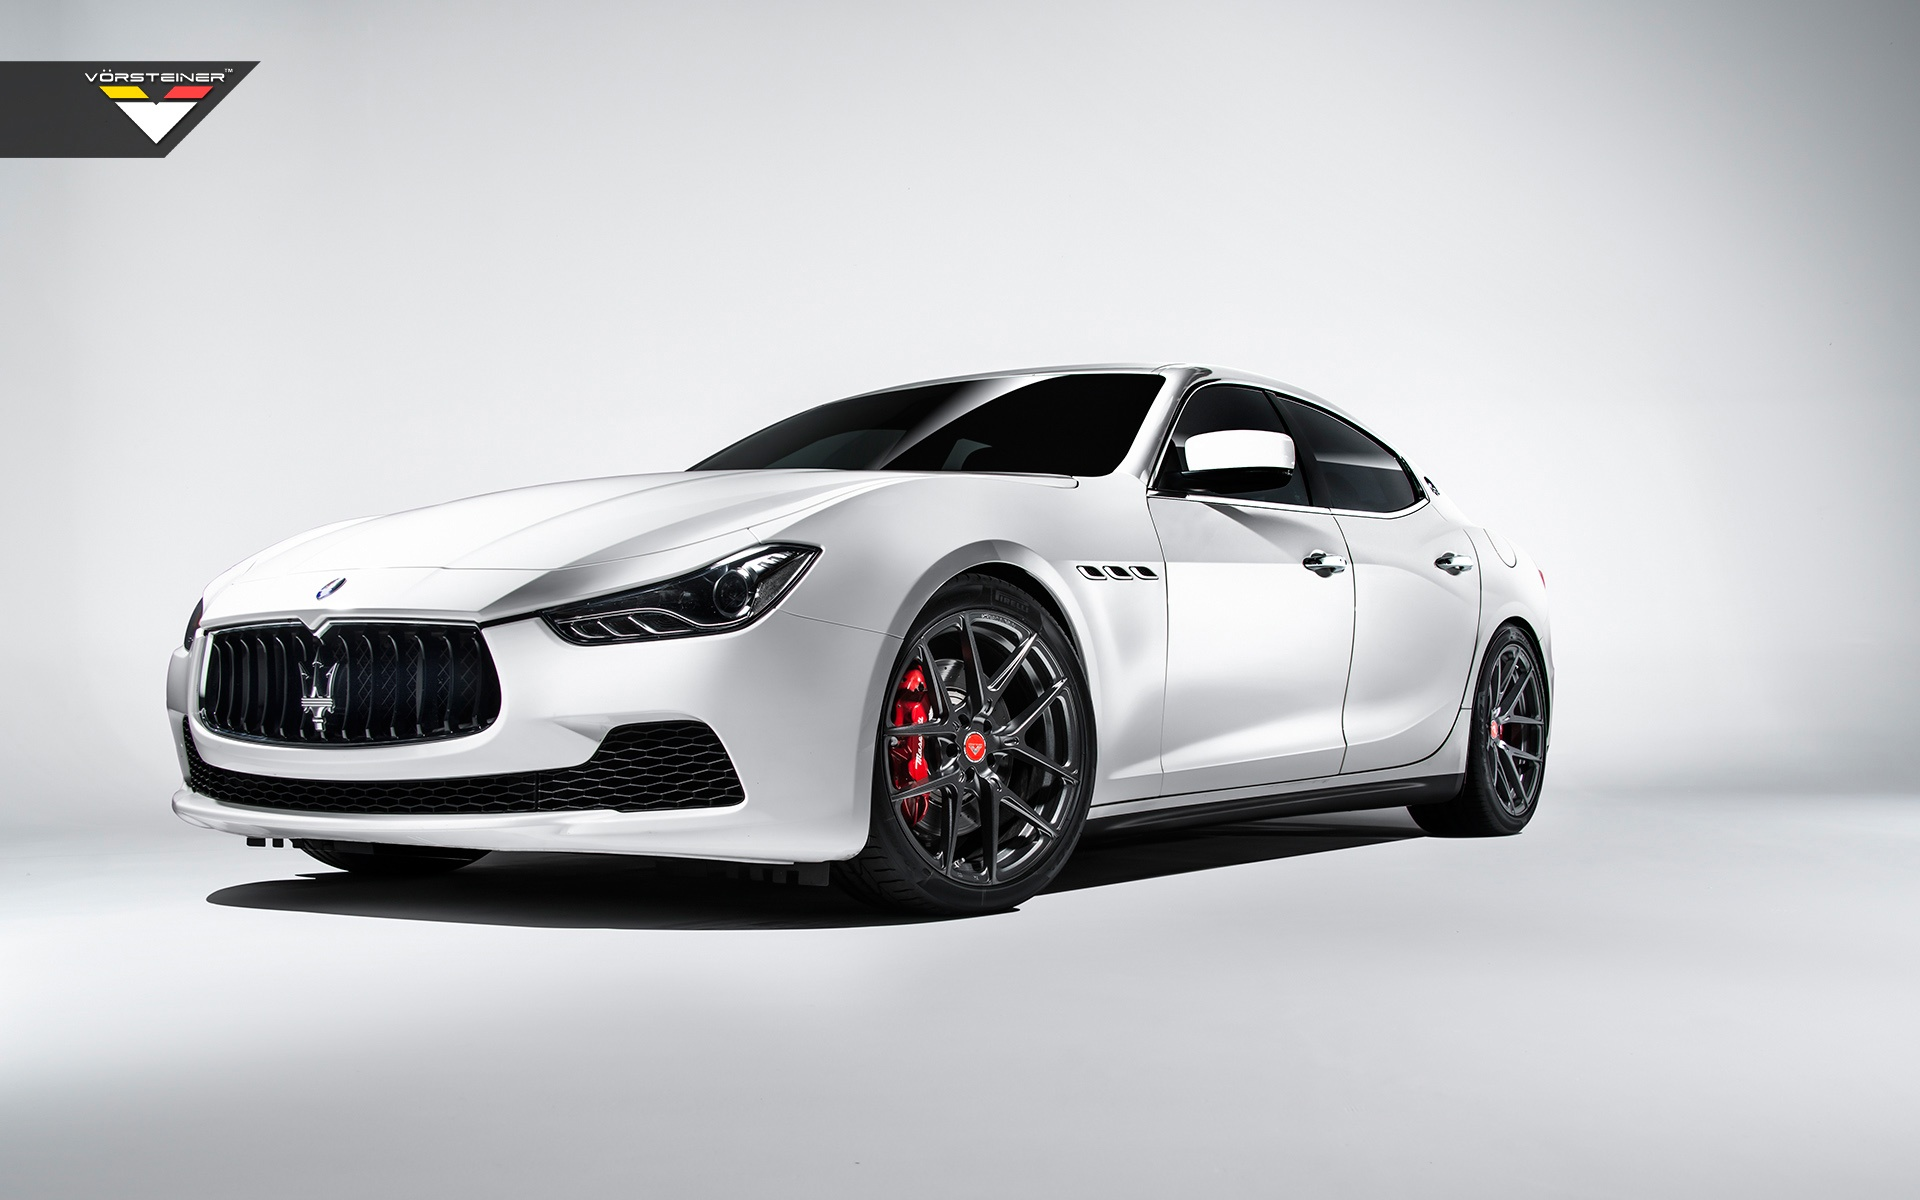 maserati ghibli vorsteiner wallpapers in jpg format for free download